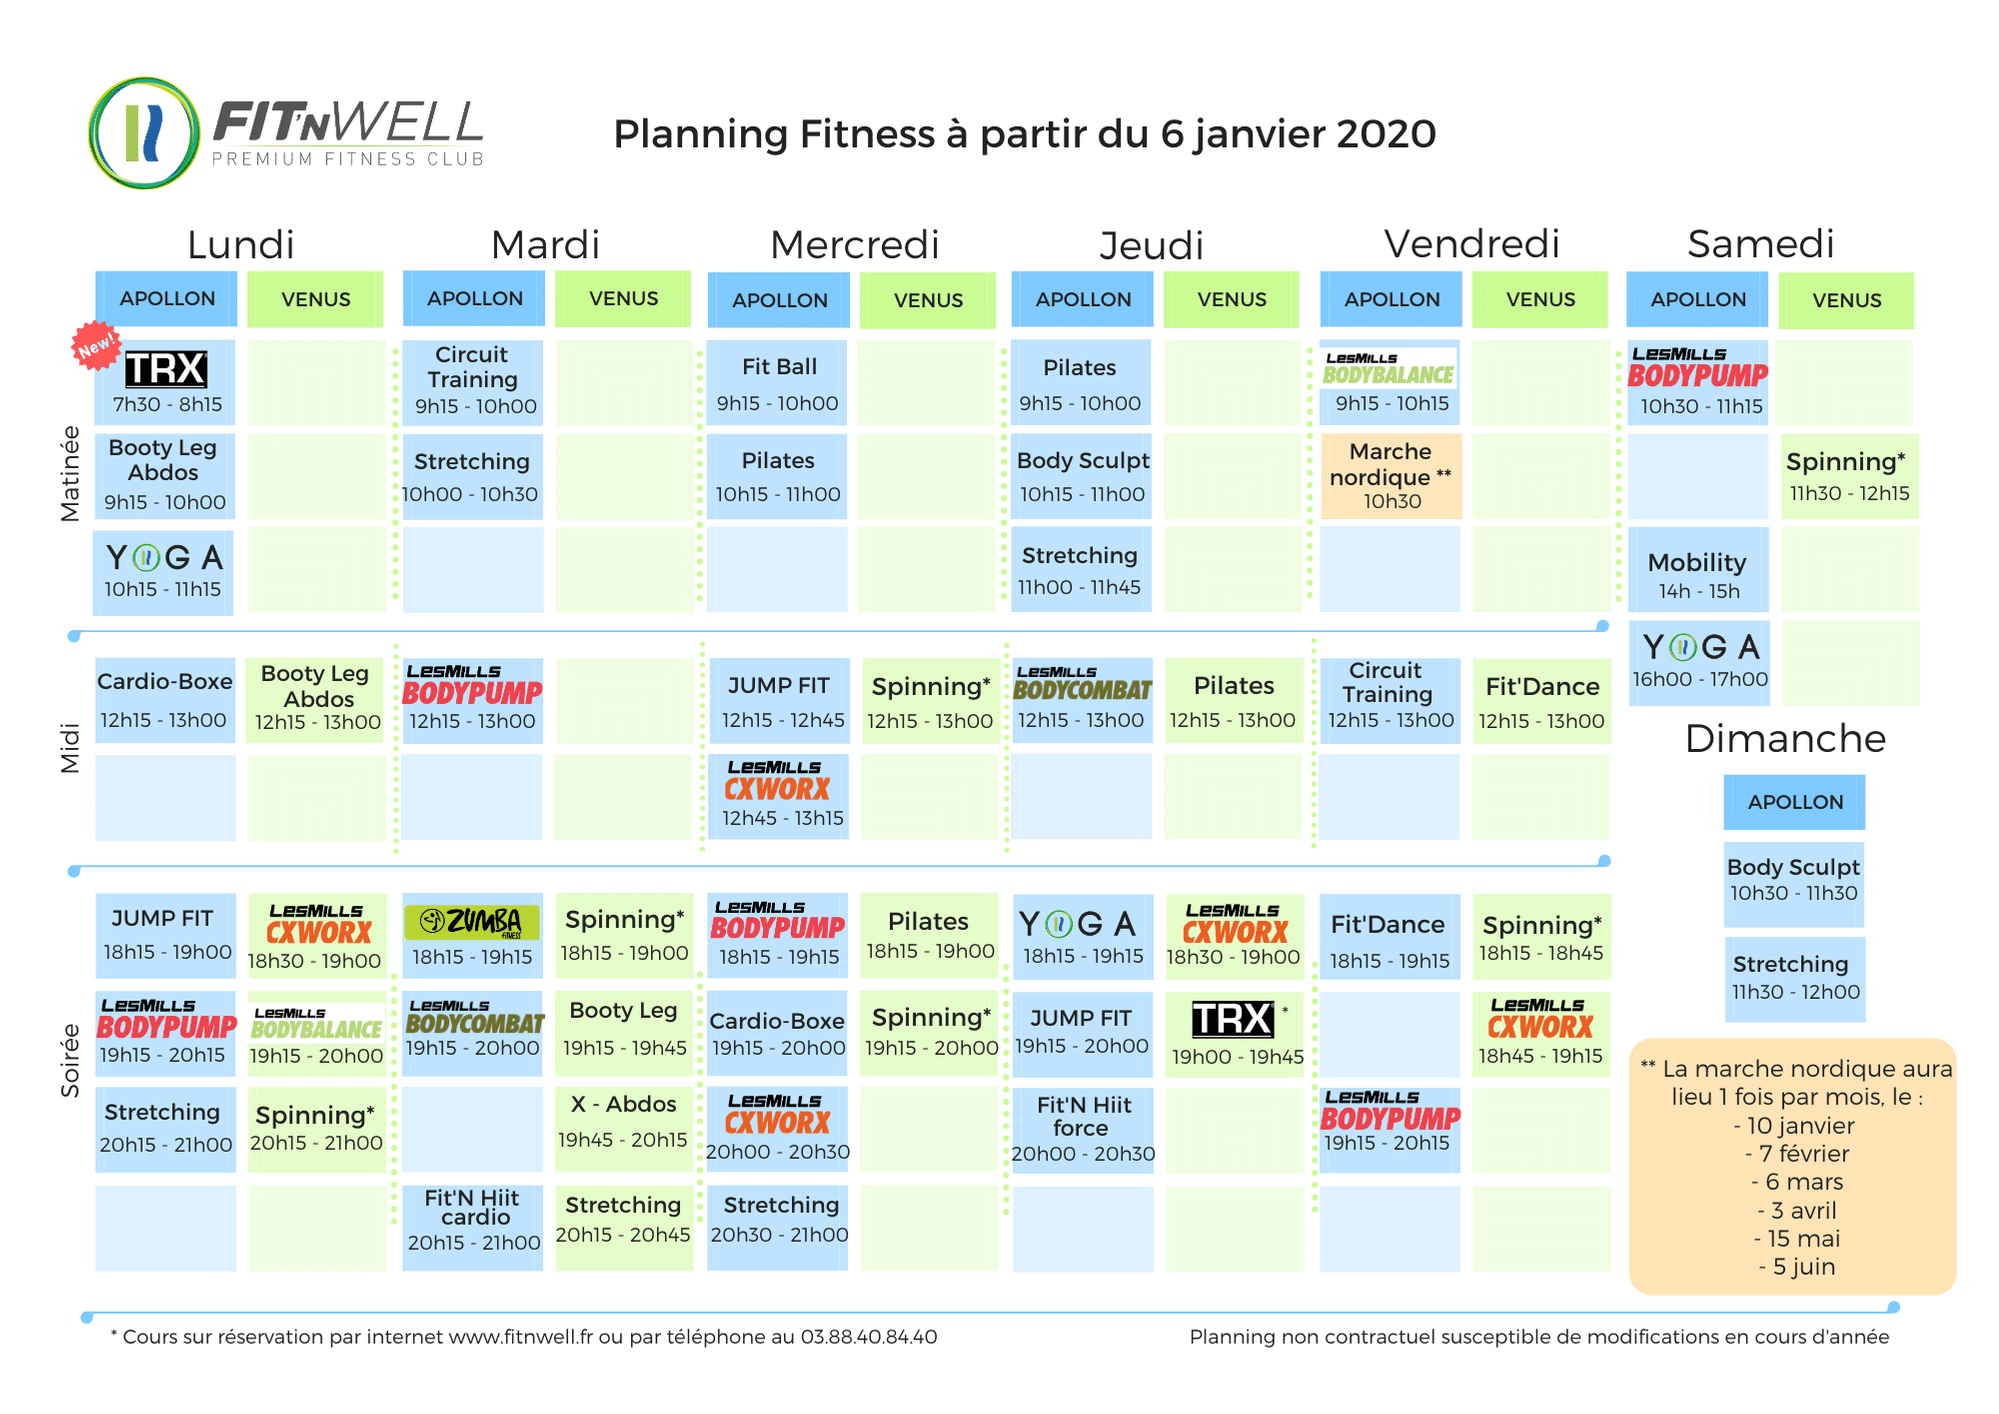 copie-de-copie-de-planning-sept-2019-1